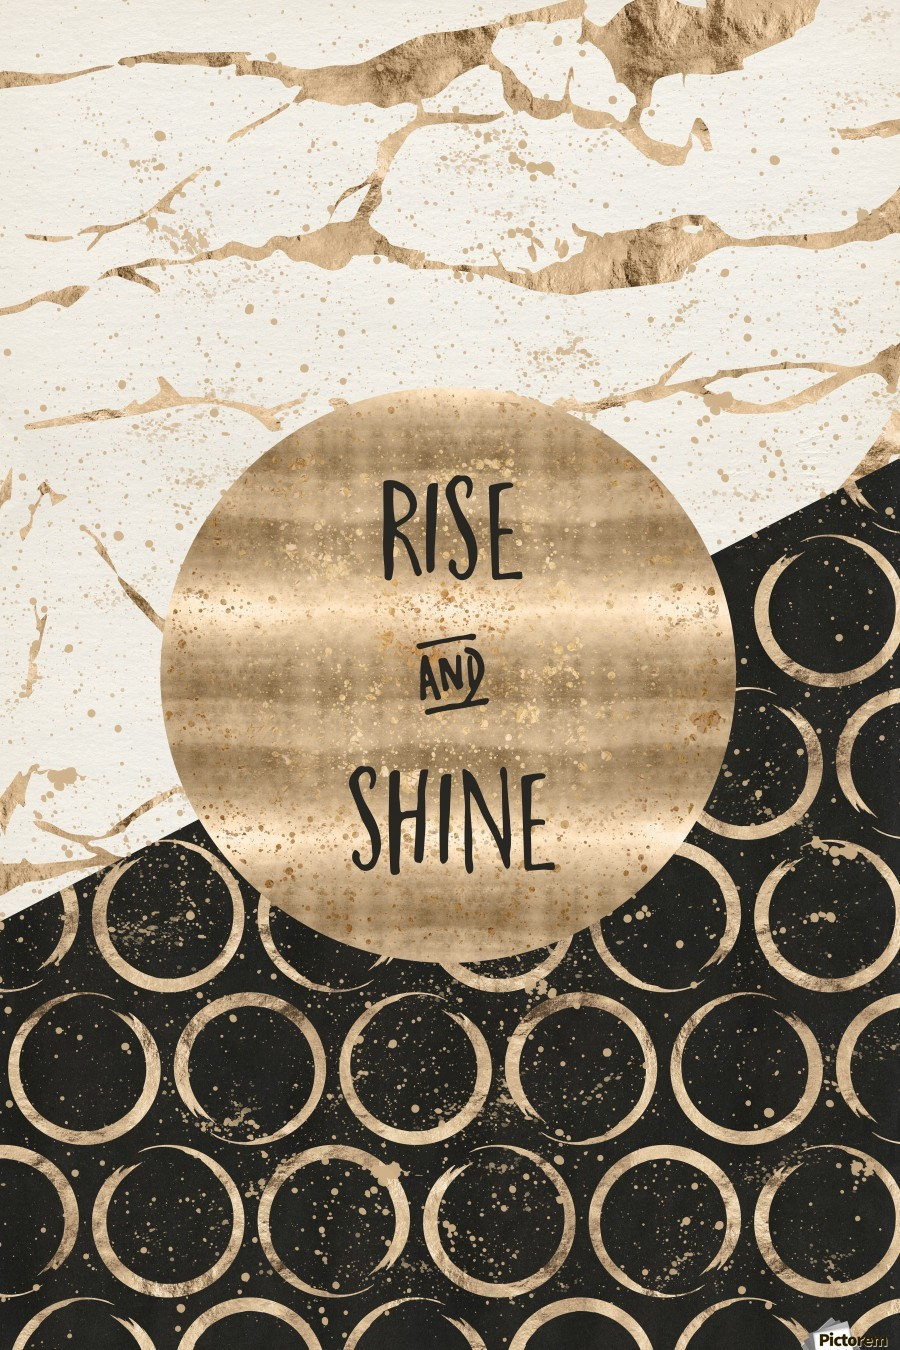 GRAPHIC ART Rise and shine  Print